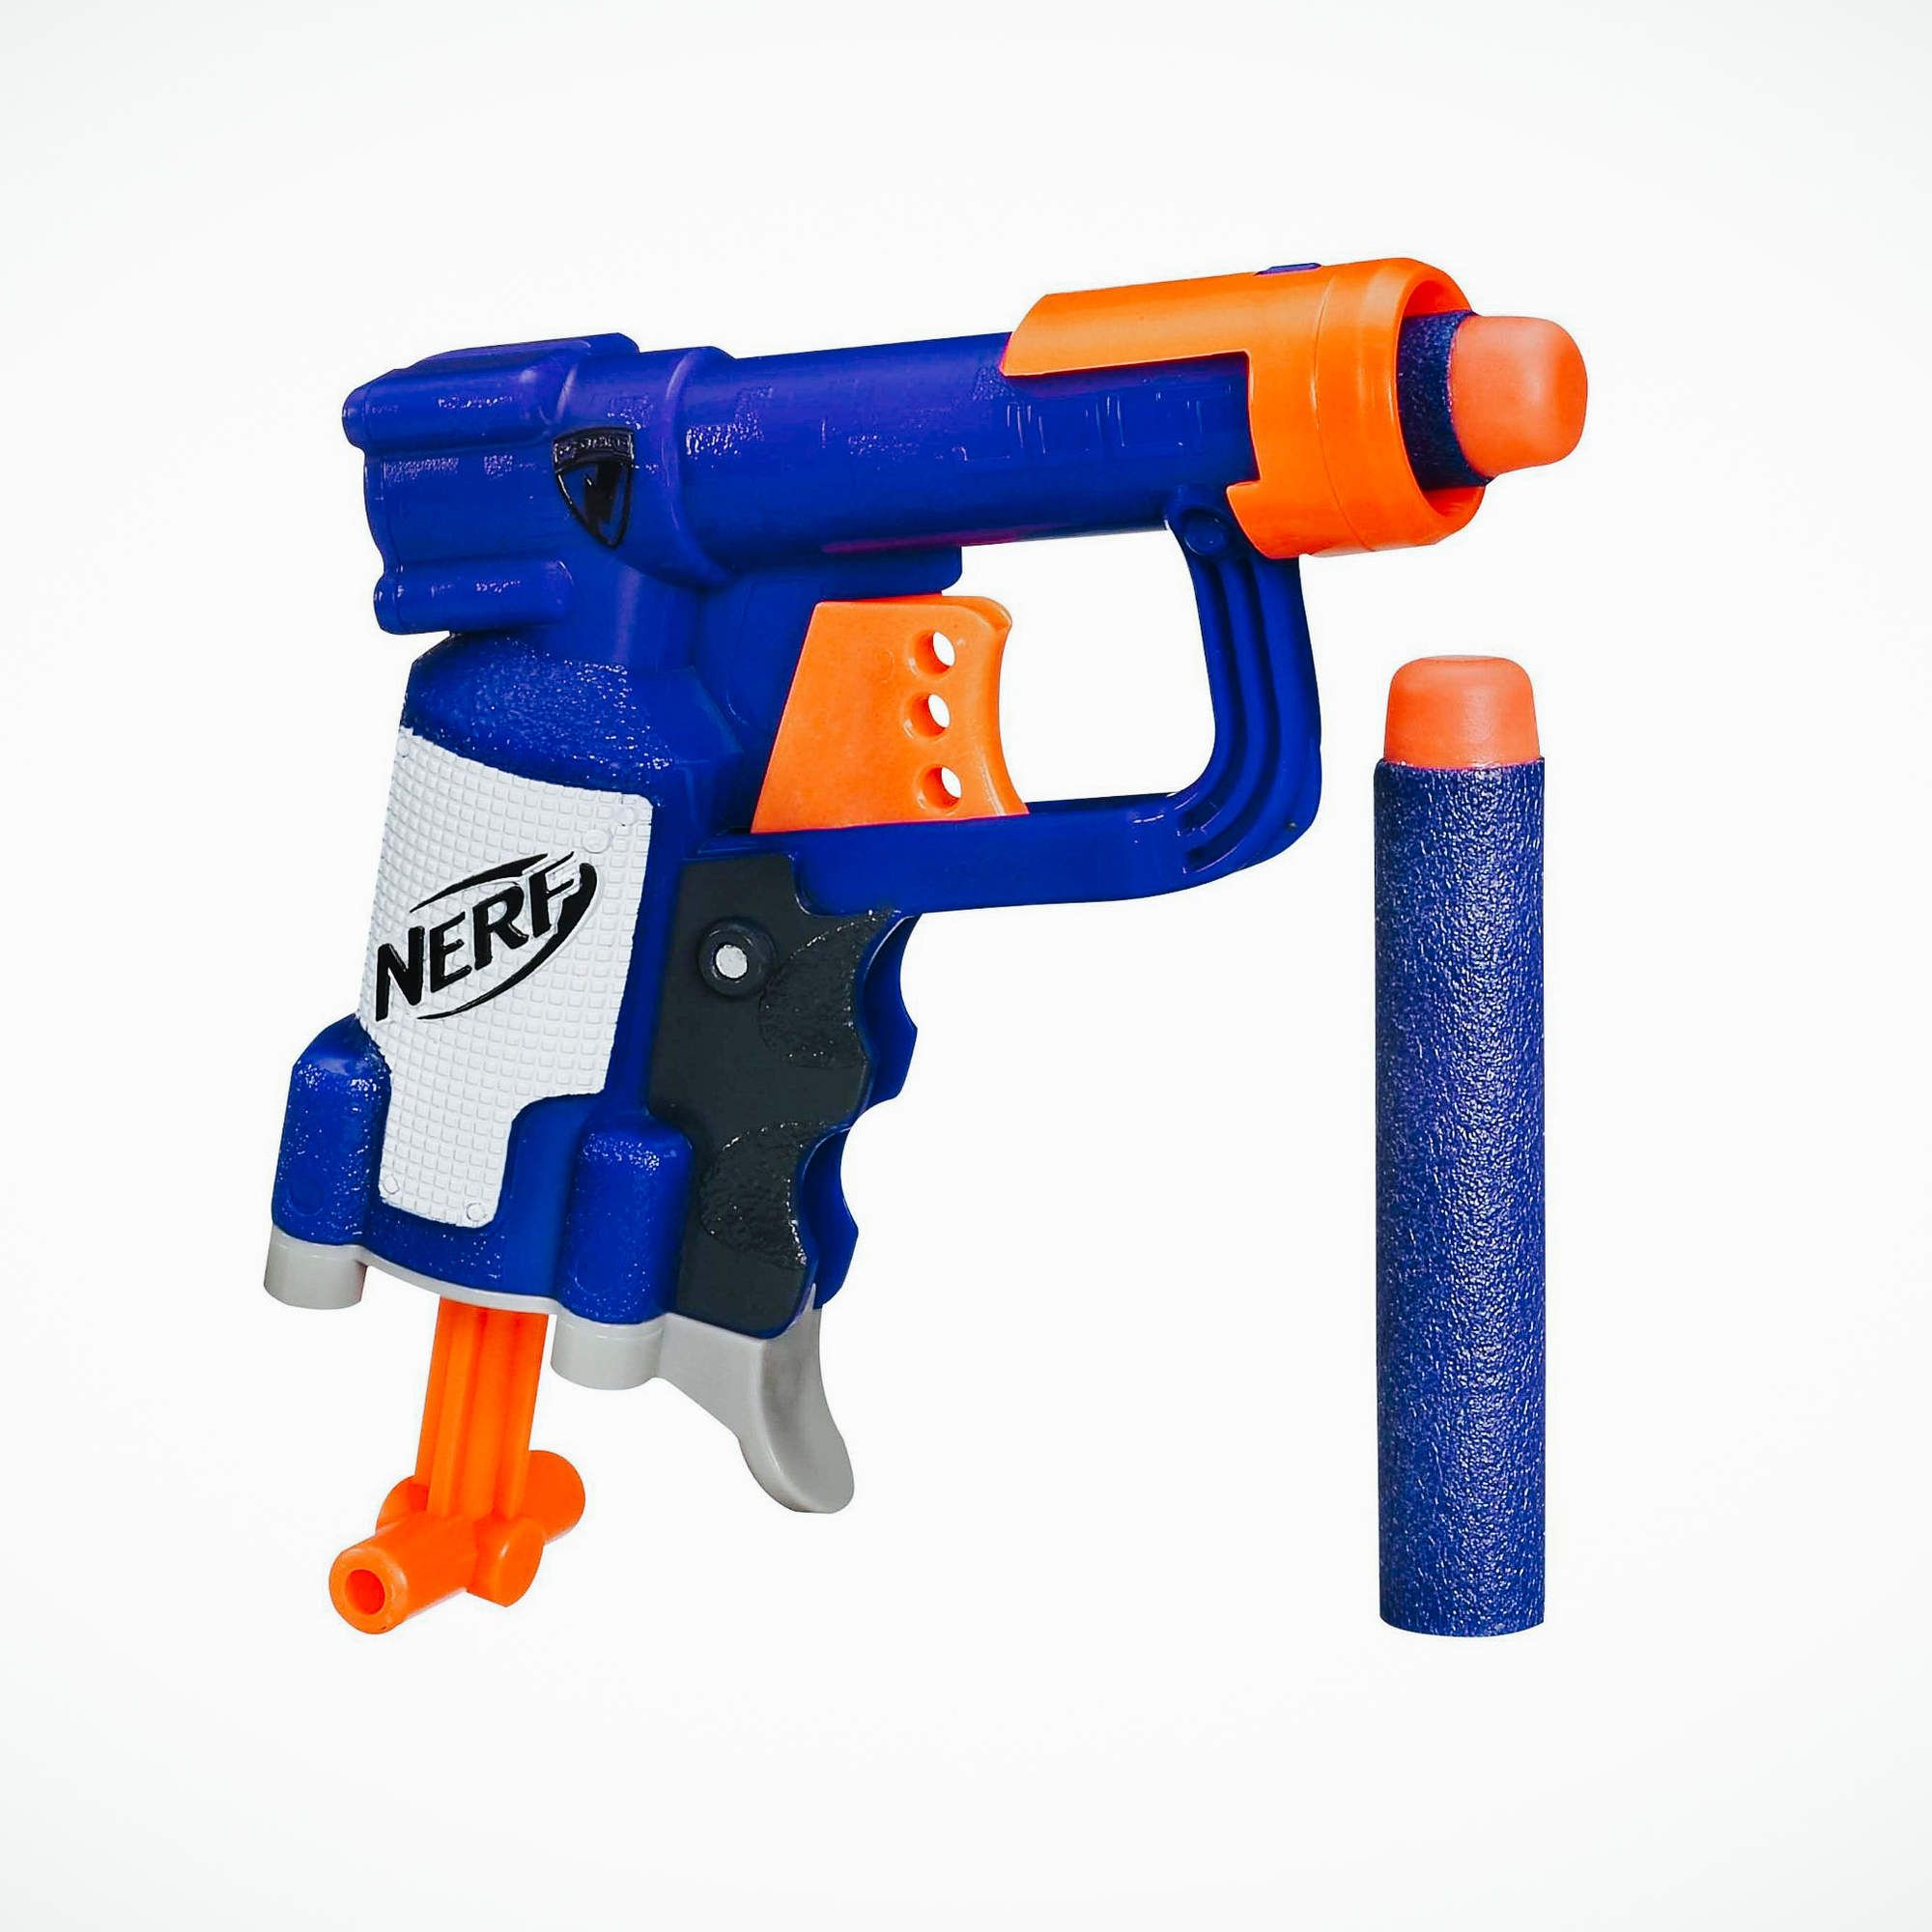 Check out this Nerf Deal on Amazon! Get this Nerf N-Strike GlowShot Blaster  for only $4.15! Normally $18.99! Illuminate the battle with the light-up ...